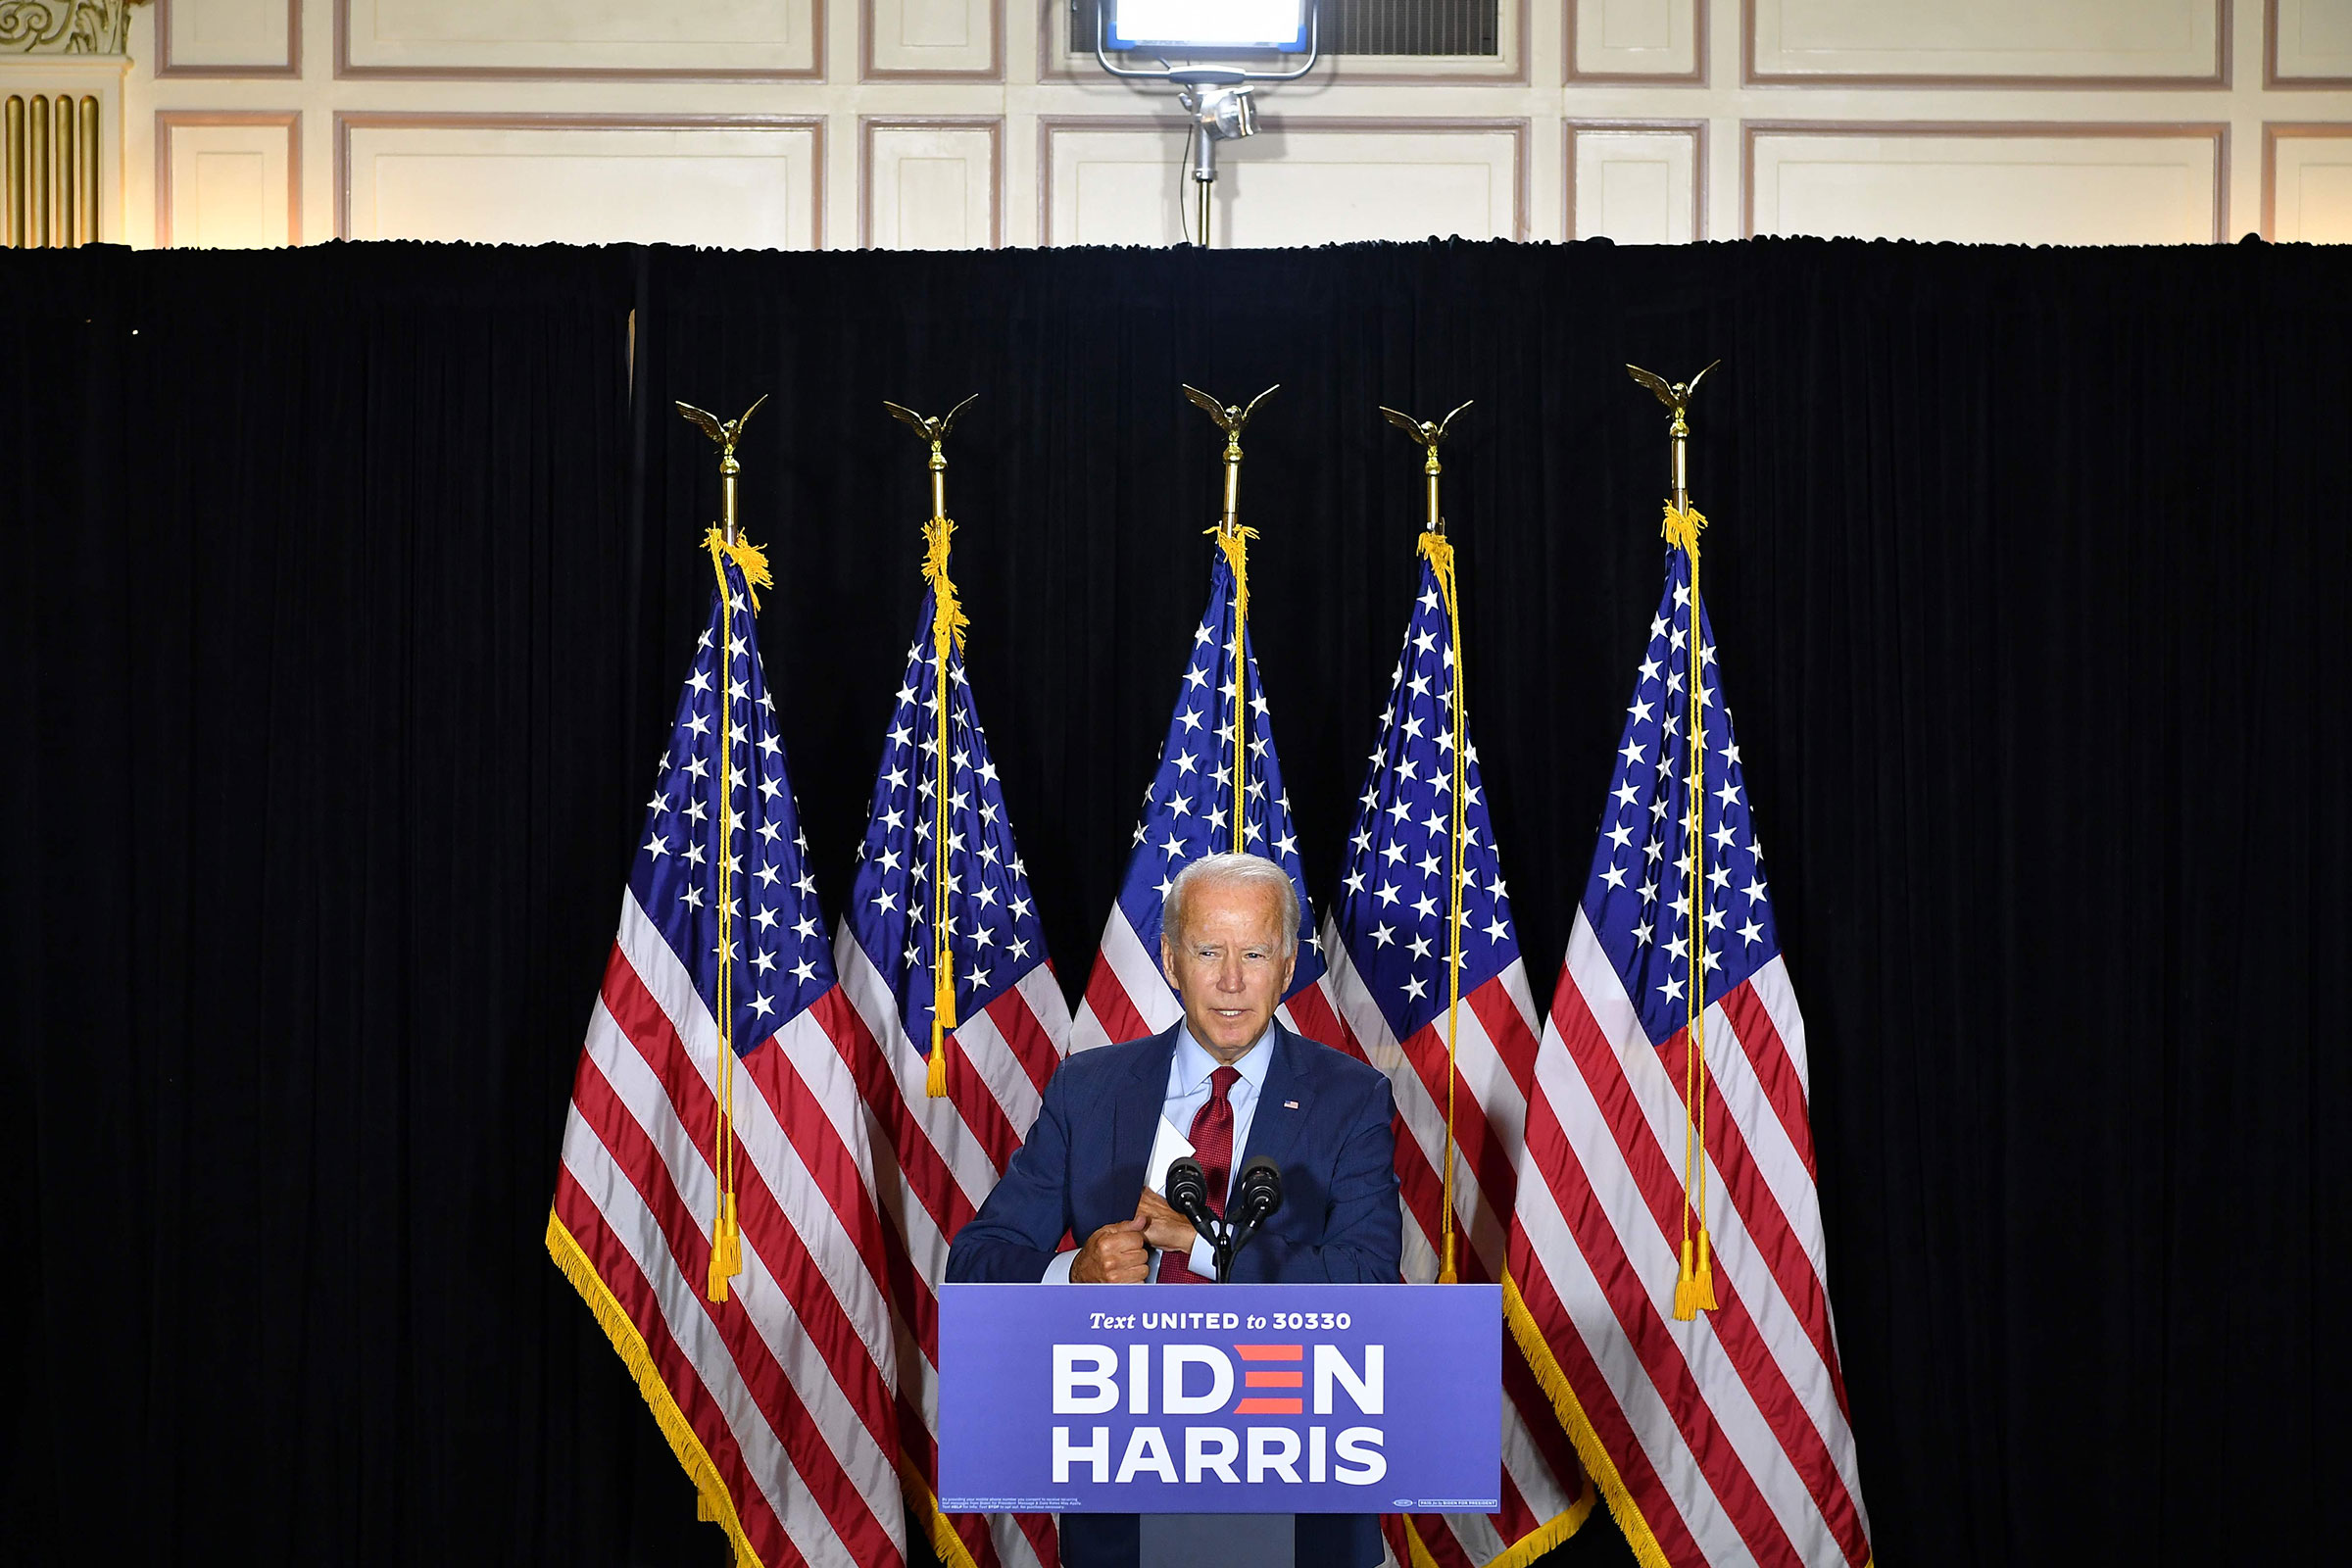 Democratic presidential nominee, former US Vice President Joe Biden, speaks to the press after receiving a briefing on COVID-19 in Wilmington, Delaware, on Aug. 13, 2020.